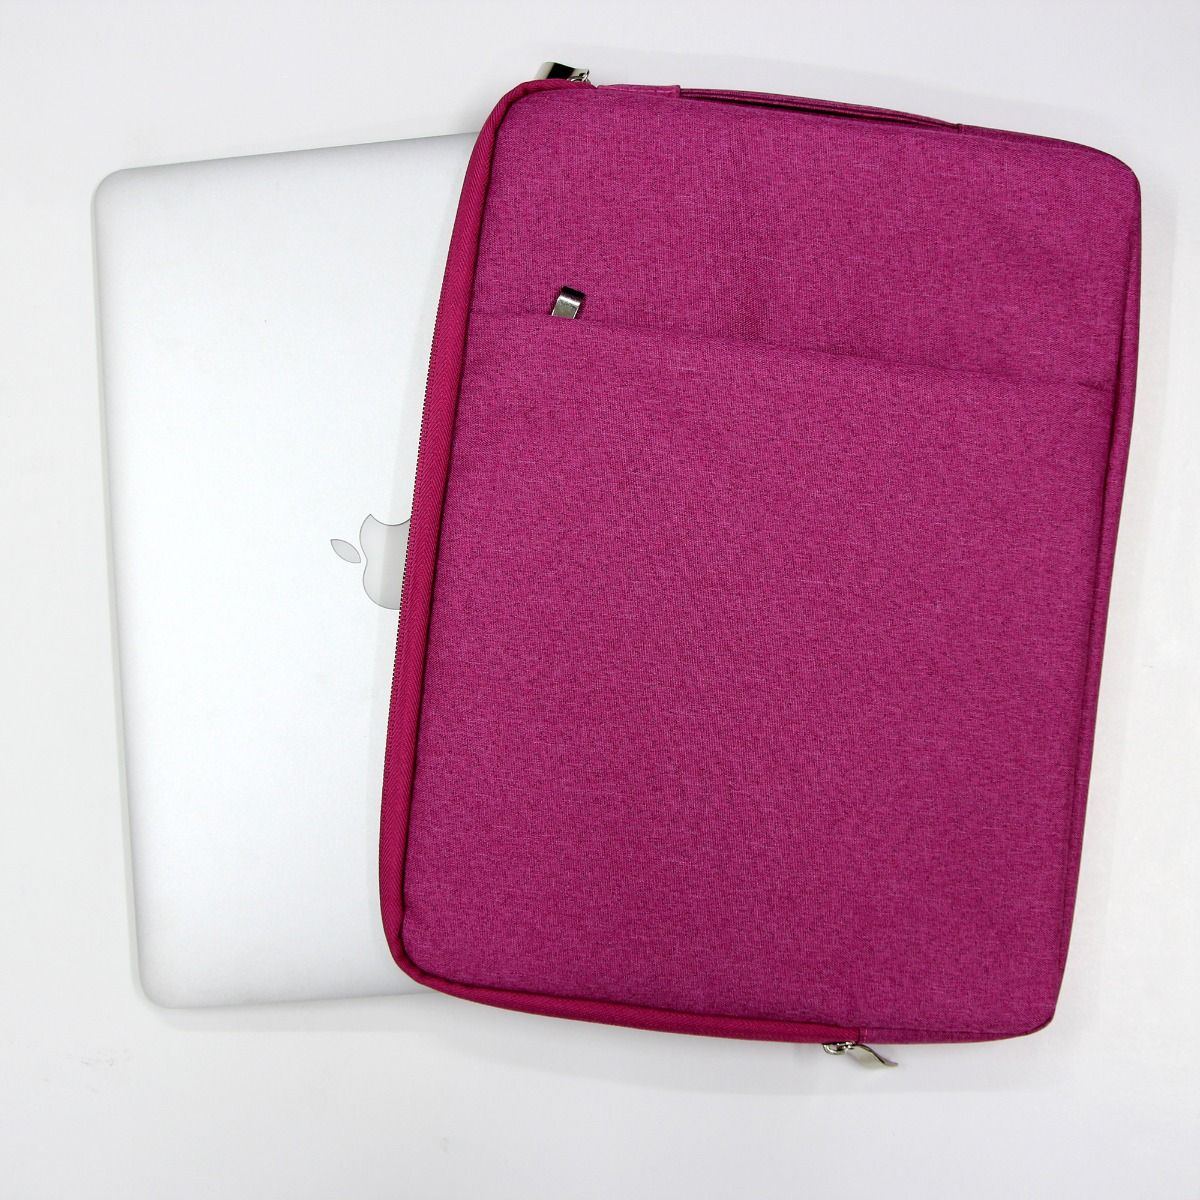 Aone 13.3 Inch Sleeve With Handle For Macbook/Ultrabook-Pink